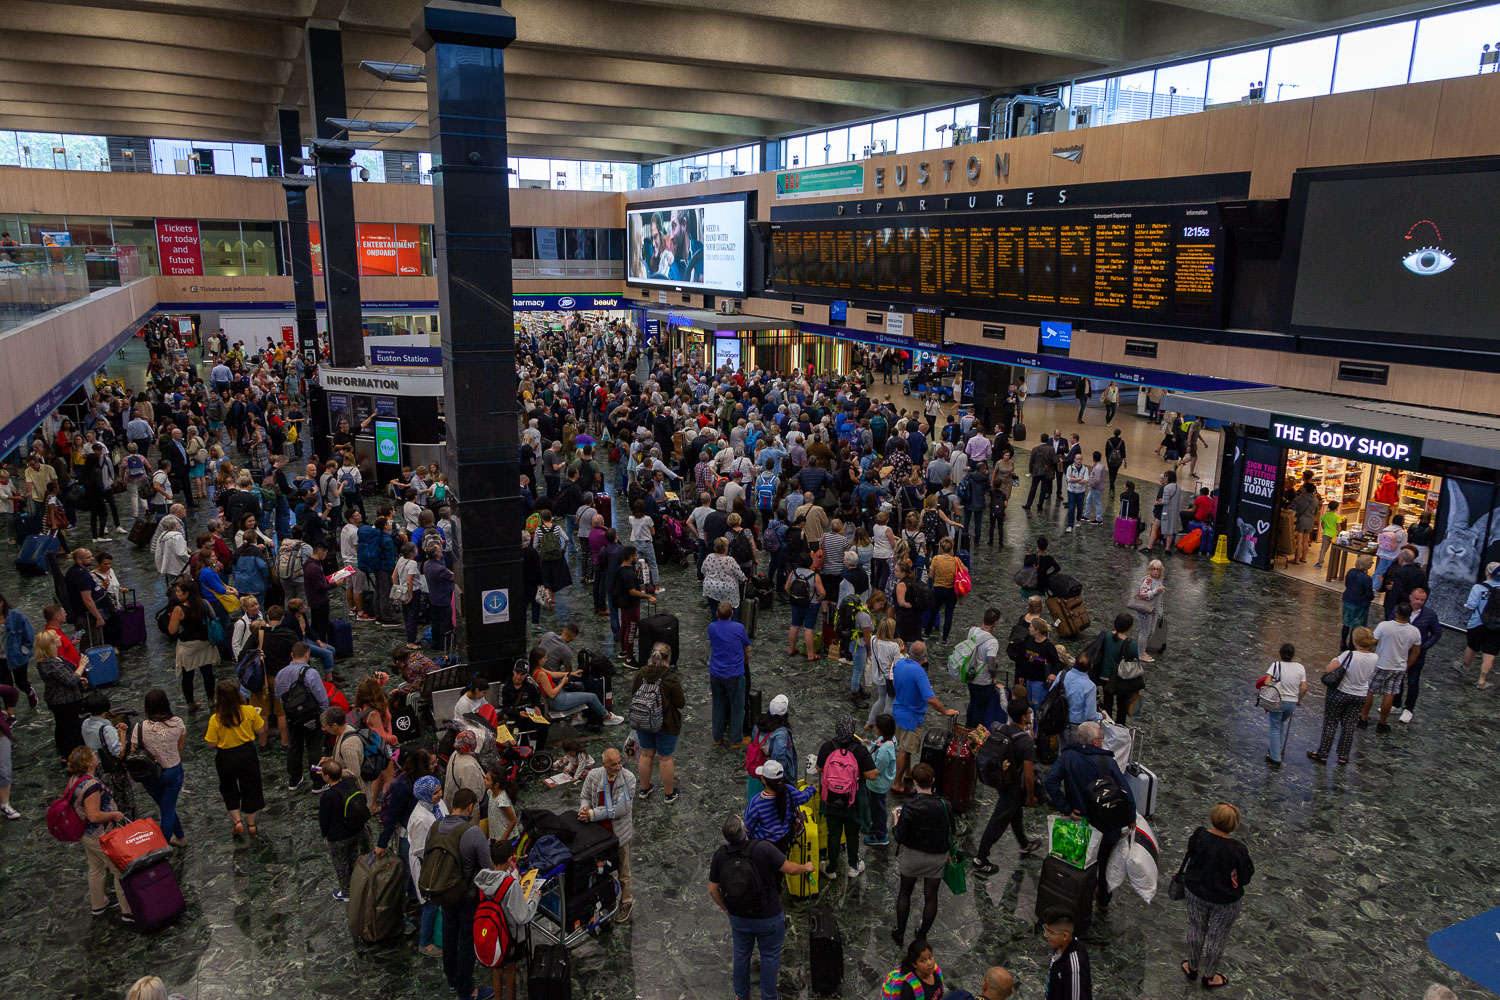 Euston_14 08 2018_3_©Matthew Nichol Photography.jpg